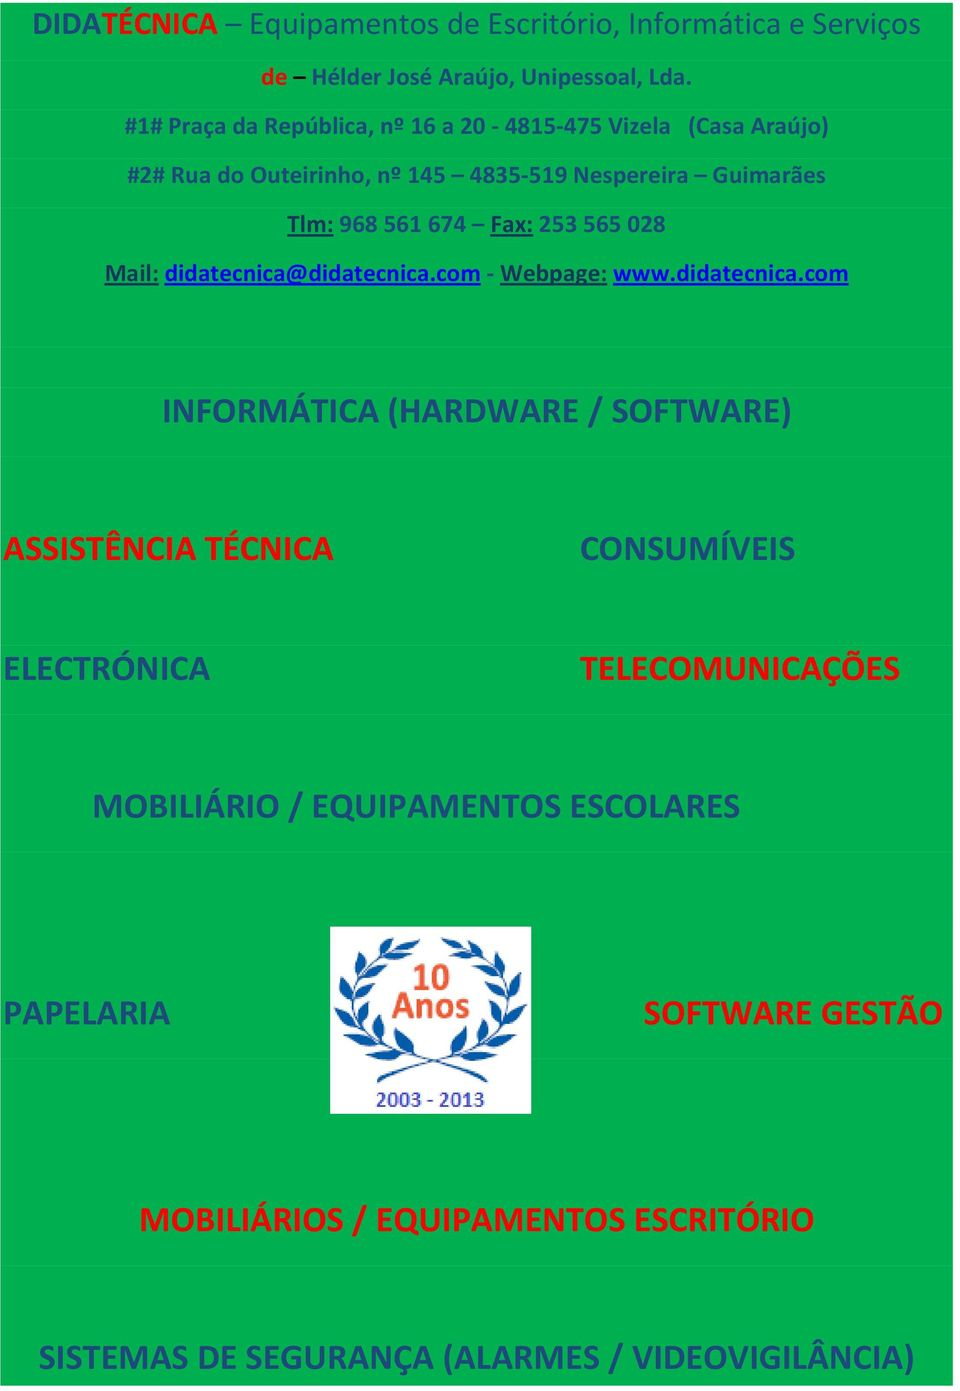 Fax: 253 565 028 Mail: didatecnica@